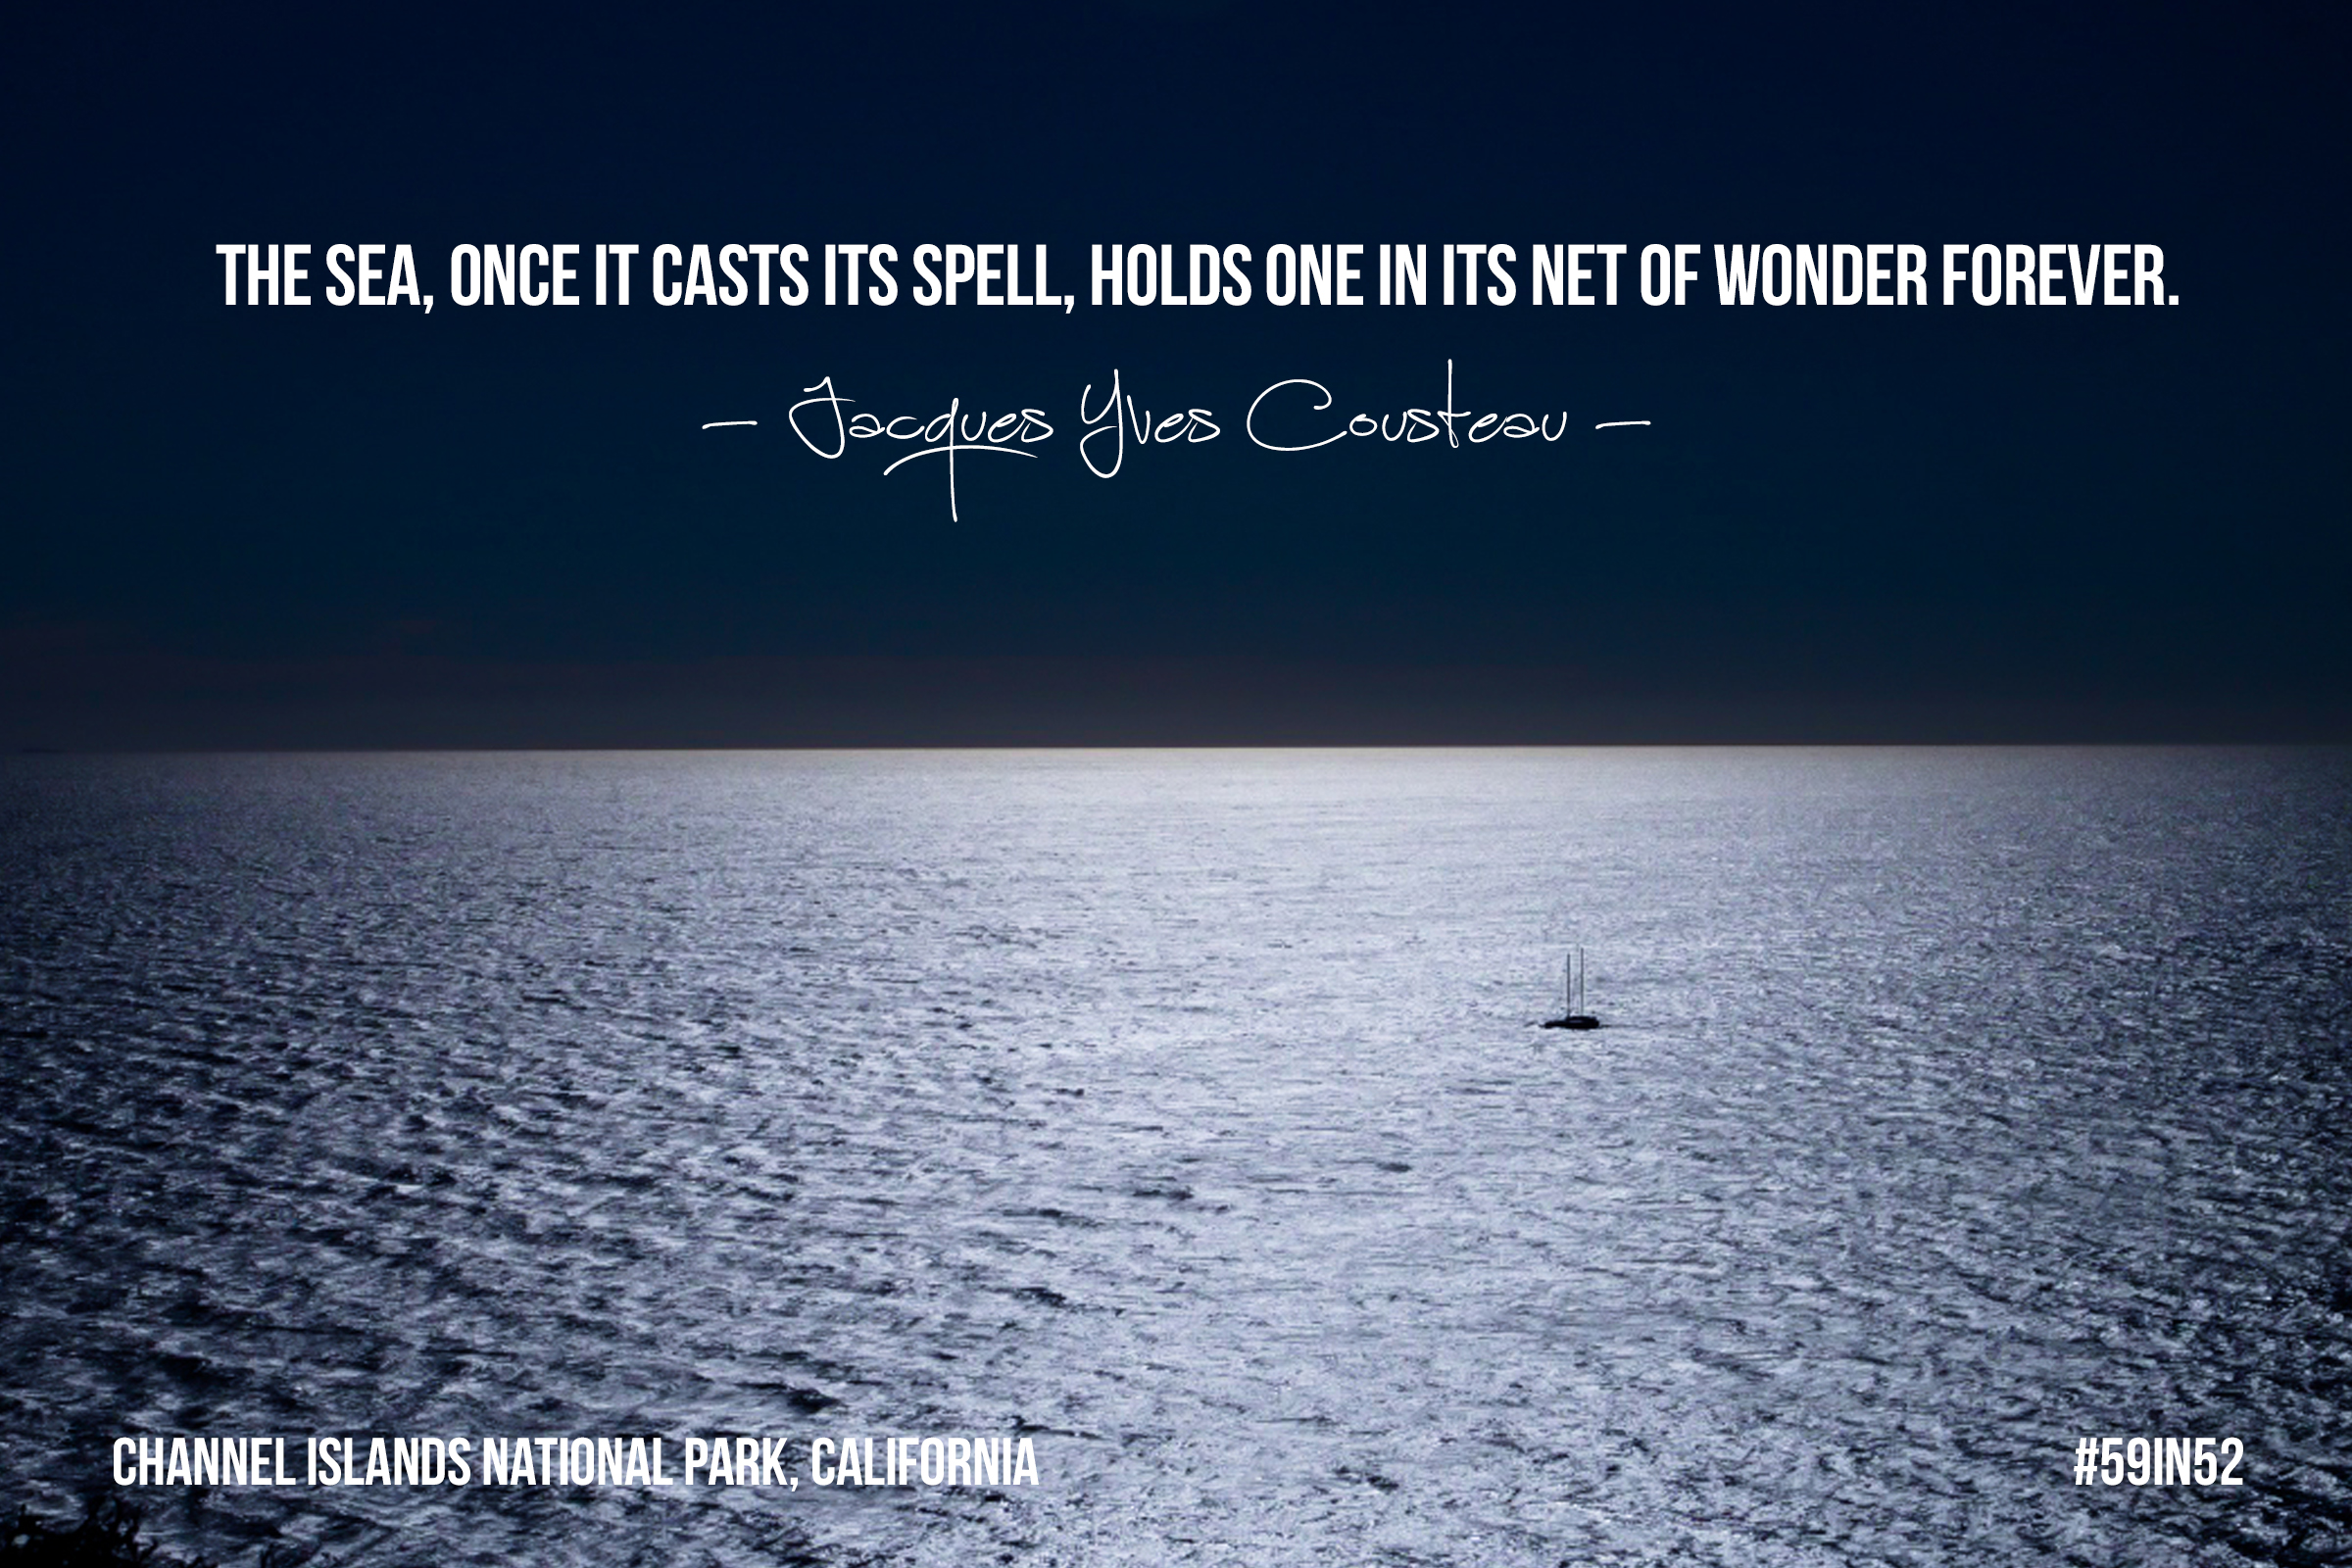 """The sea, once it casts its spell, holds one in its net of wonder forever."" - Jacques Yves Cousteau"